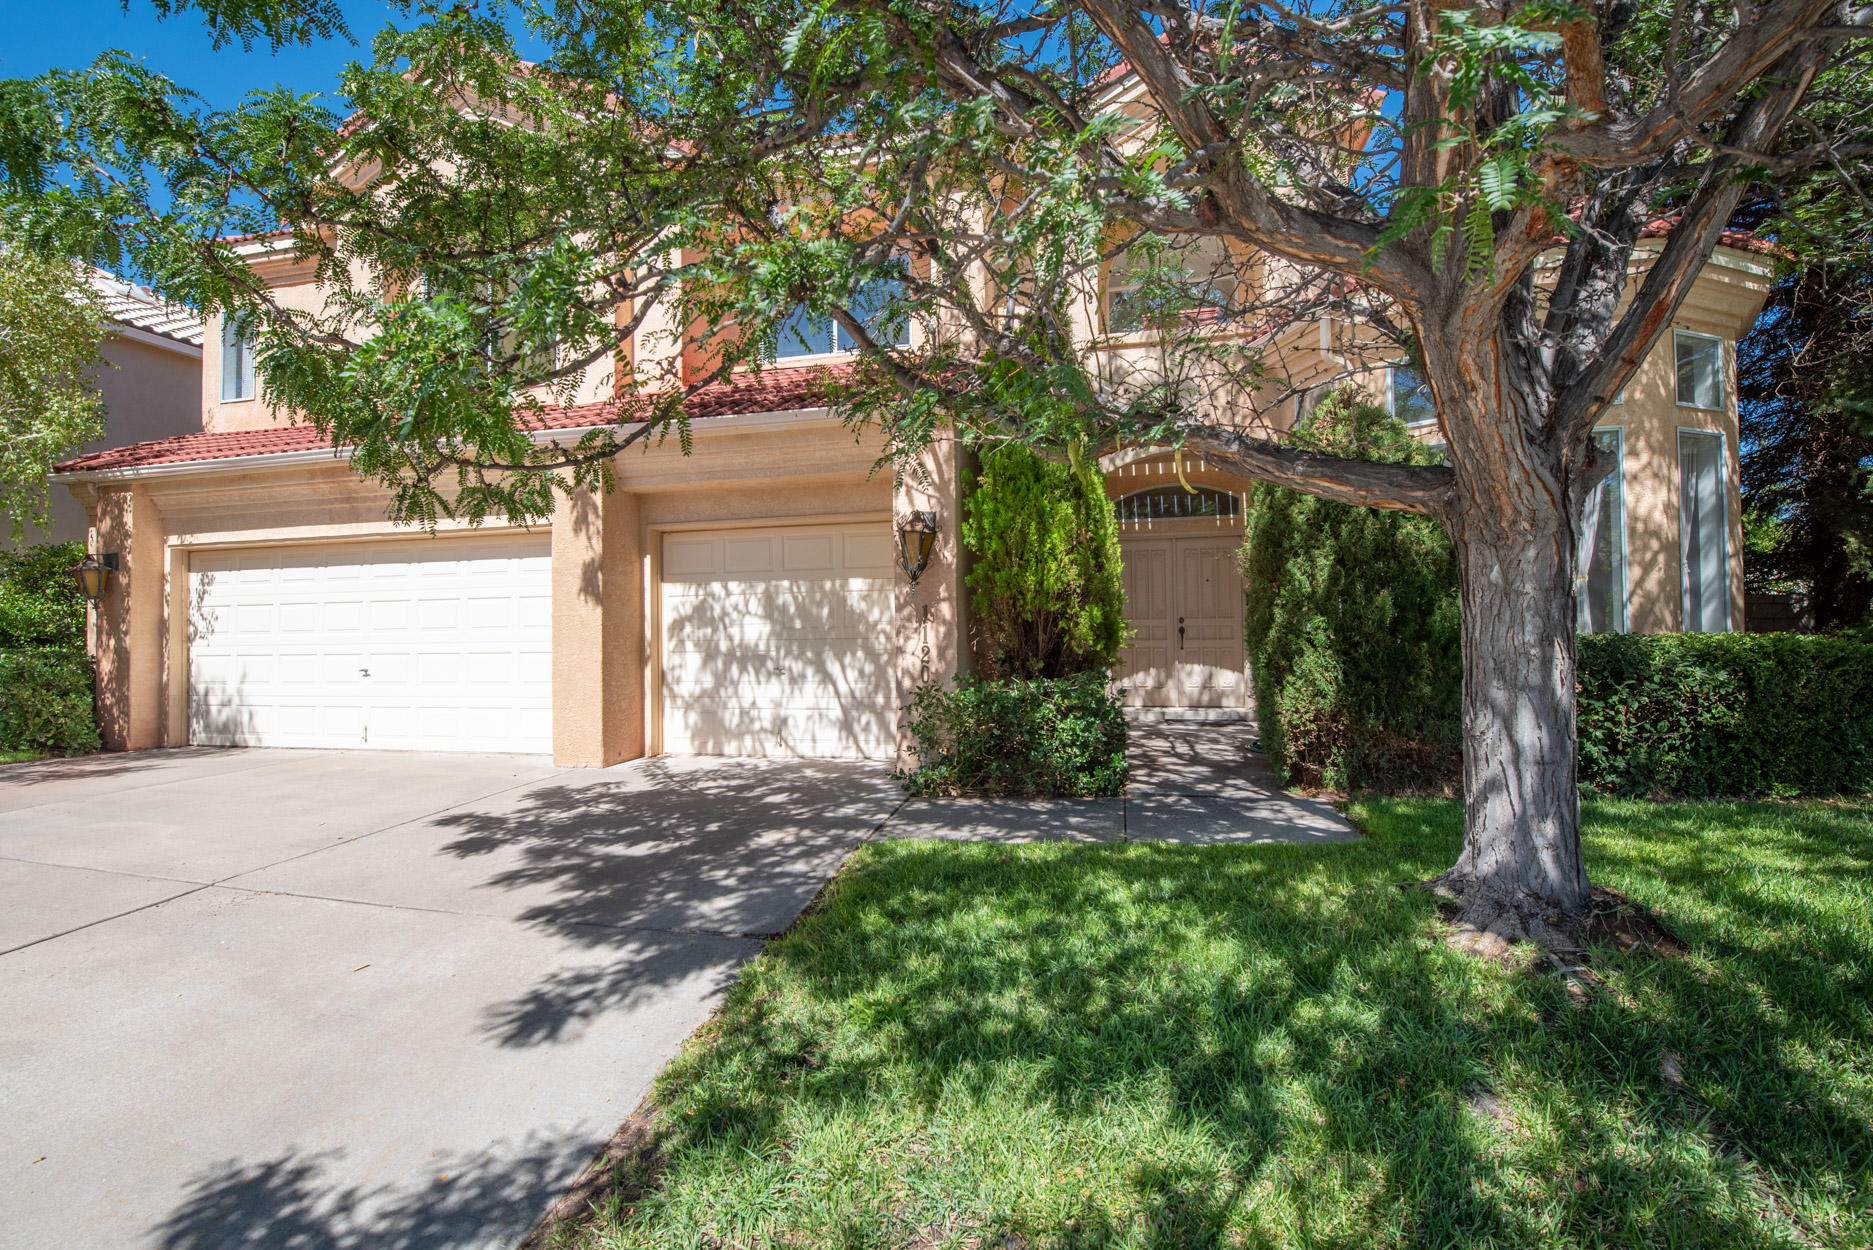 TANOAN EAST-CORNER LOT! 5BDR/4BA/3CG featuring an open floor plan & 2 living areas! Beautiful windows abound with lots of natural light! UPDATES include two evap coolers! Two new water heaters! New gas cooktop & disposal! Living room & family room with fireplaces. One bdr/study/office on the main level! Kitchen features a new gas cooktop, an island, a built-in wall oven, tile flooring, a walk-in pantry & spacious breakfast nook. Large secondary bdrs with walk-in closets and one bdr with its own private bath makes a great guest suite! Owner suite features a balcony, fireplace, his & her walk-in closets, dual sink vanity, separate shower and garden tub! Private backyard features a beautiful pond, grass, trees & shrubs and a covered patio for outdoor living! Private gated community of Tanoan!